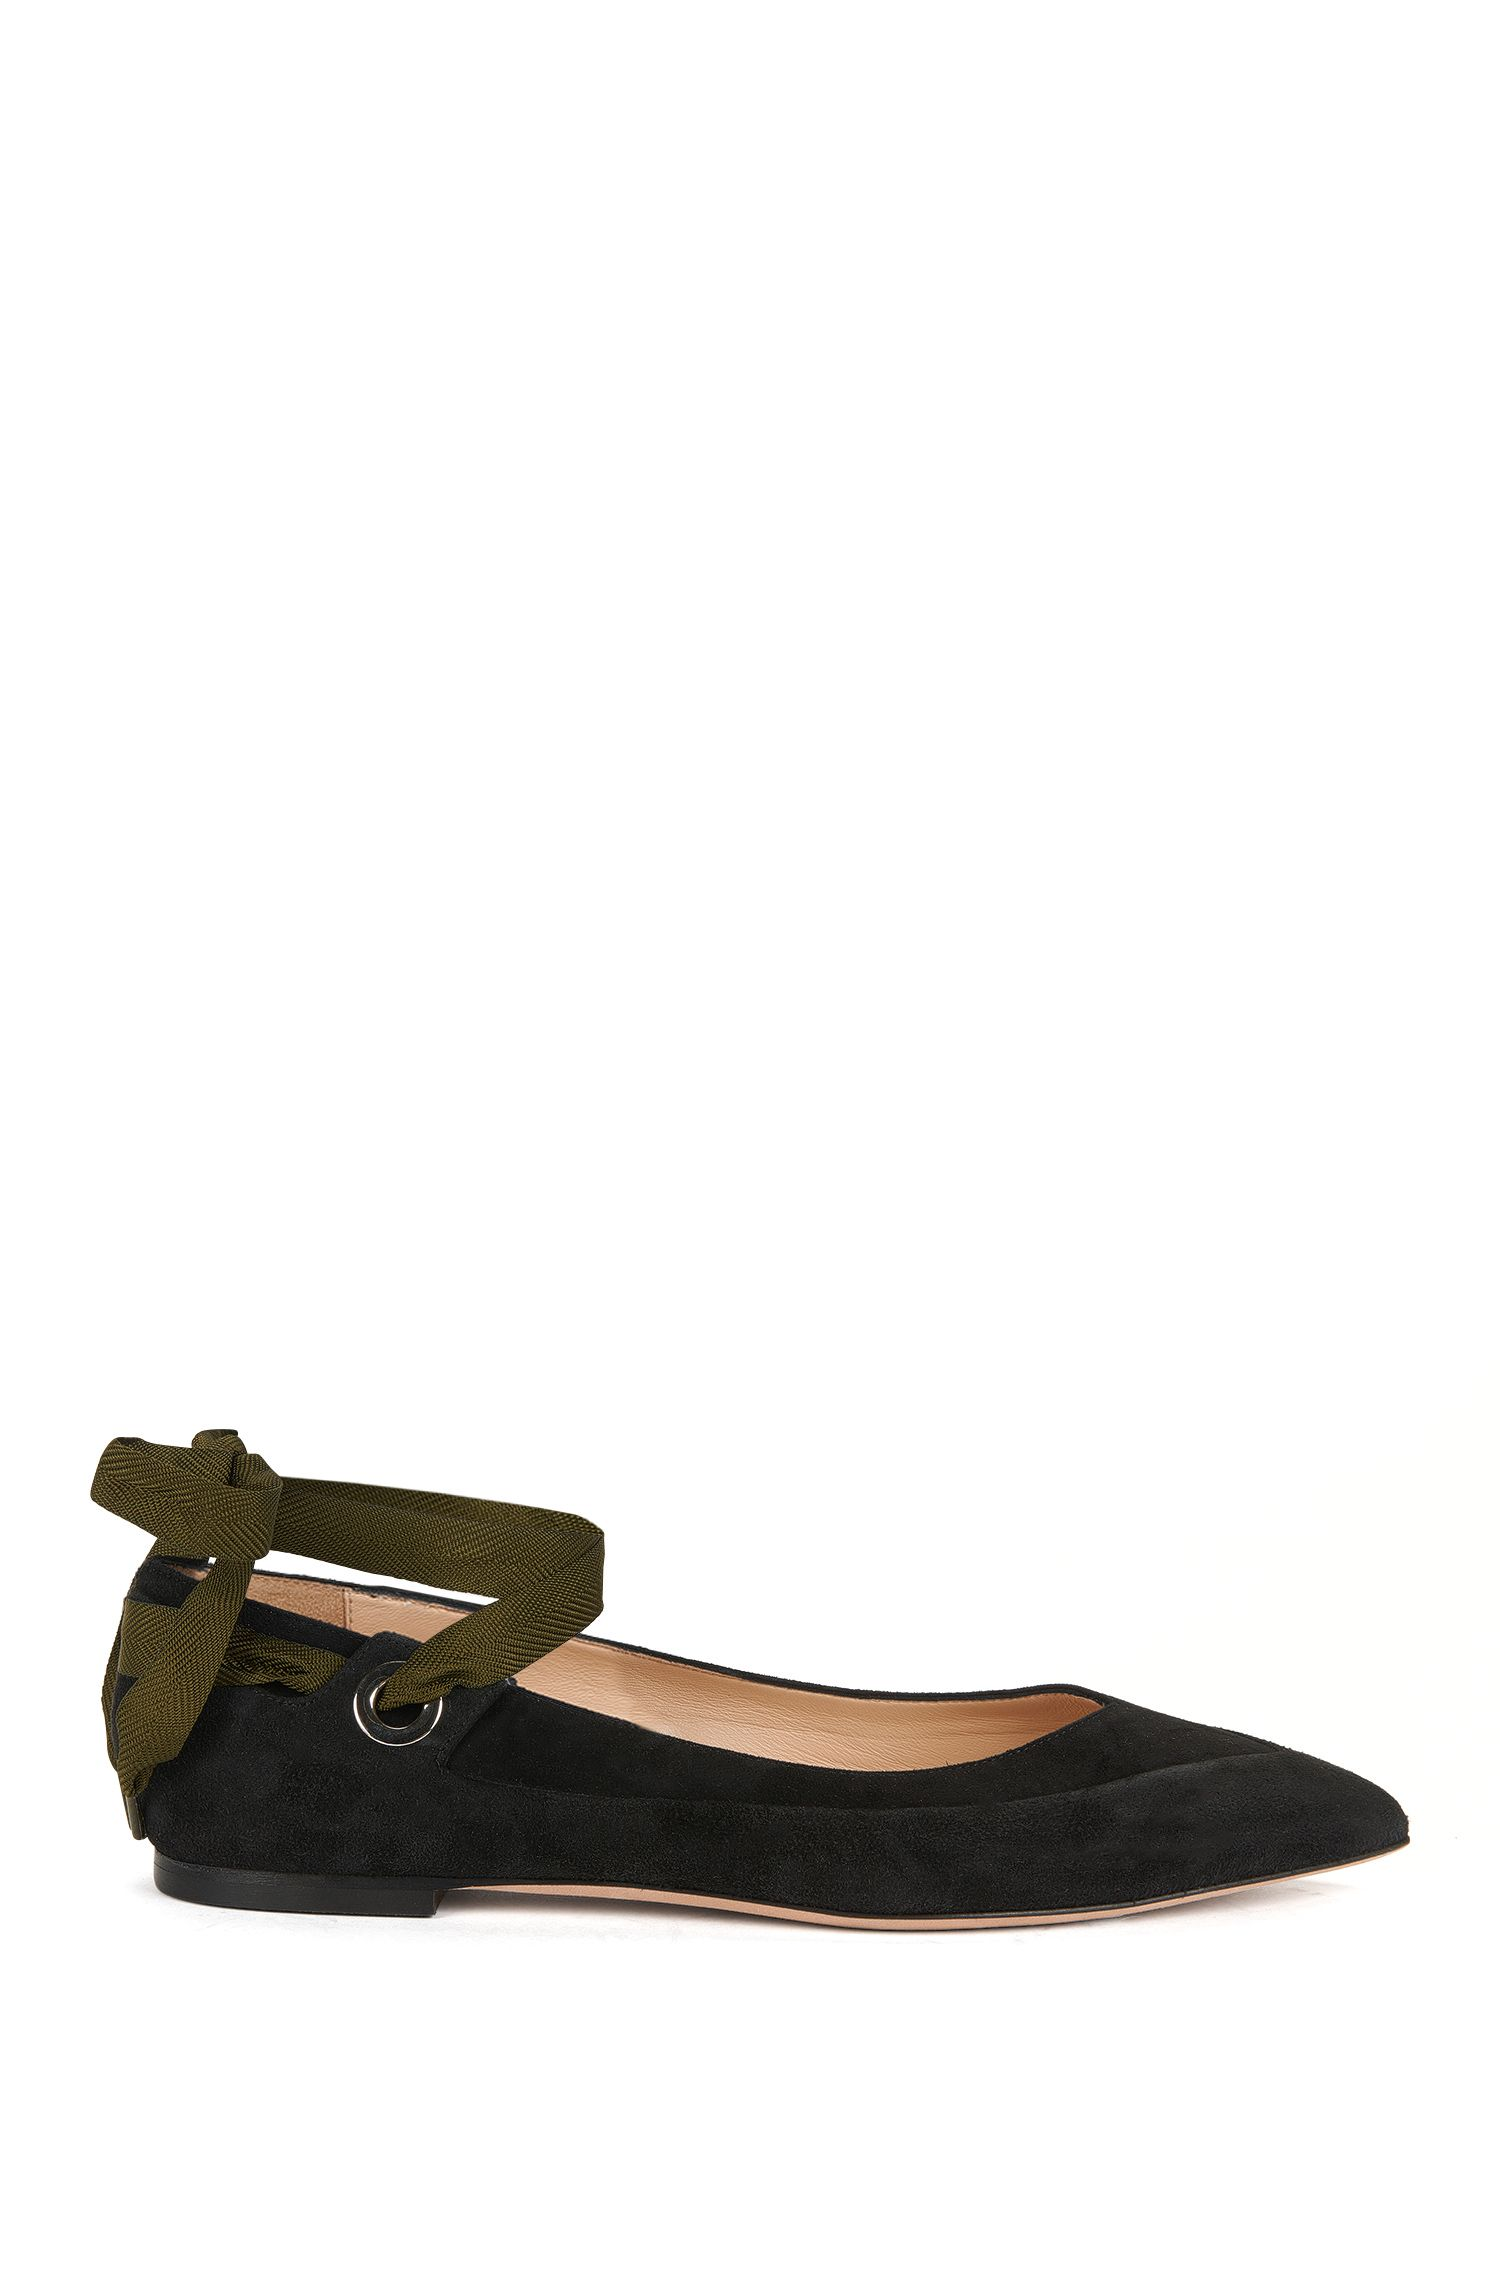 Suede ballerina pumps with grosgrain ribbon